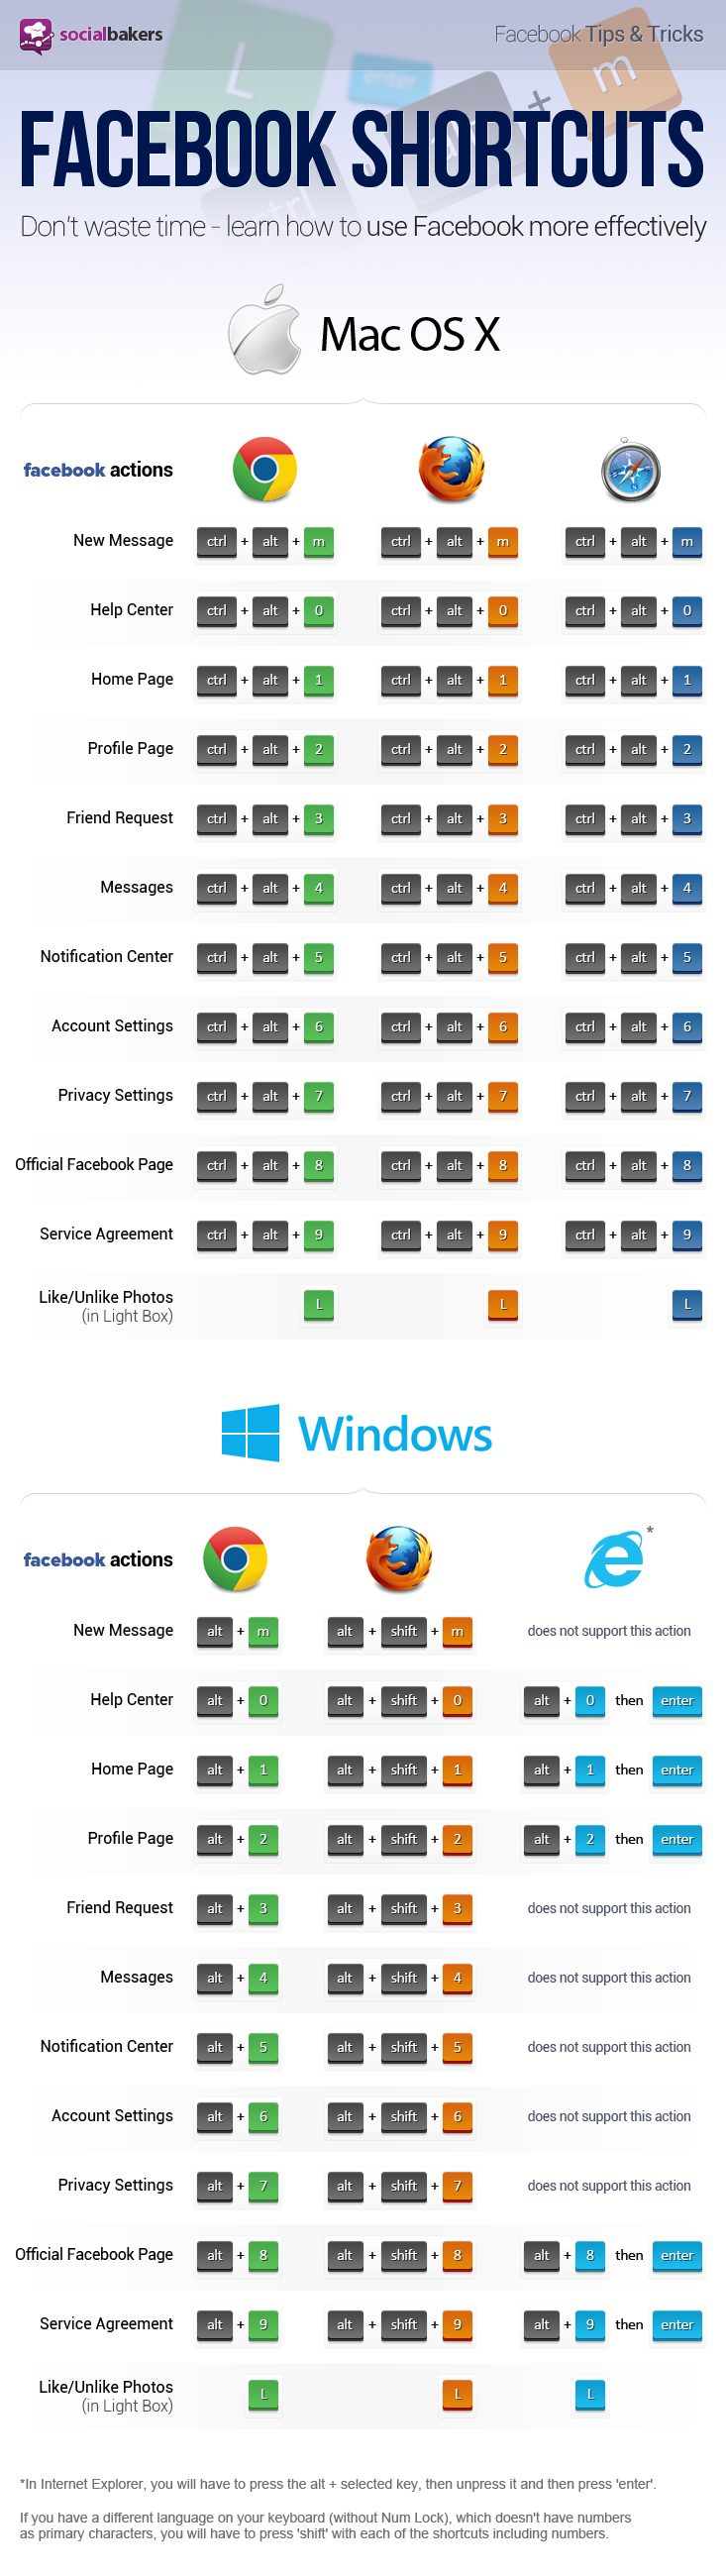 socialbakers facebook shortcut infographic